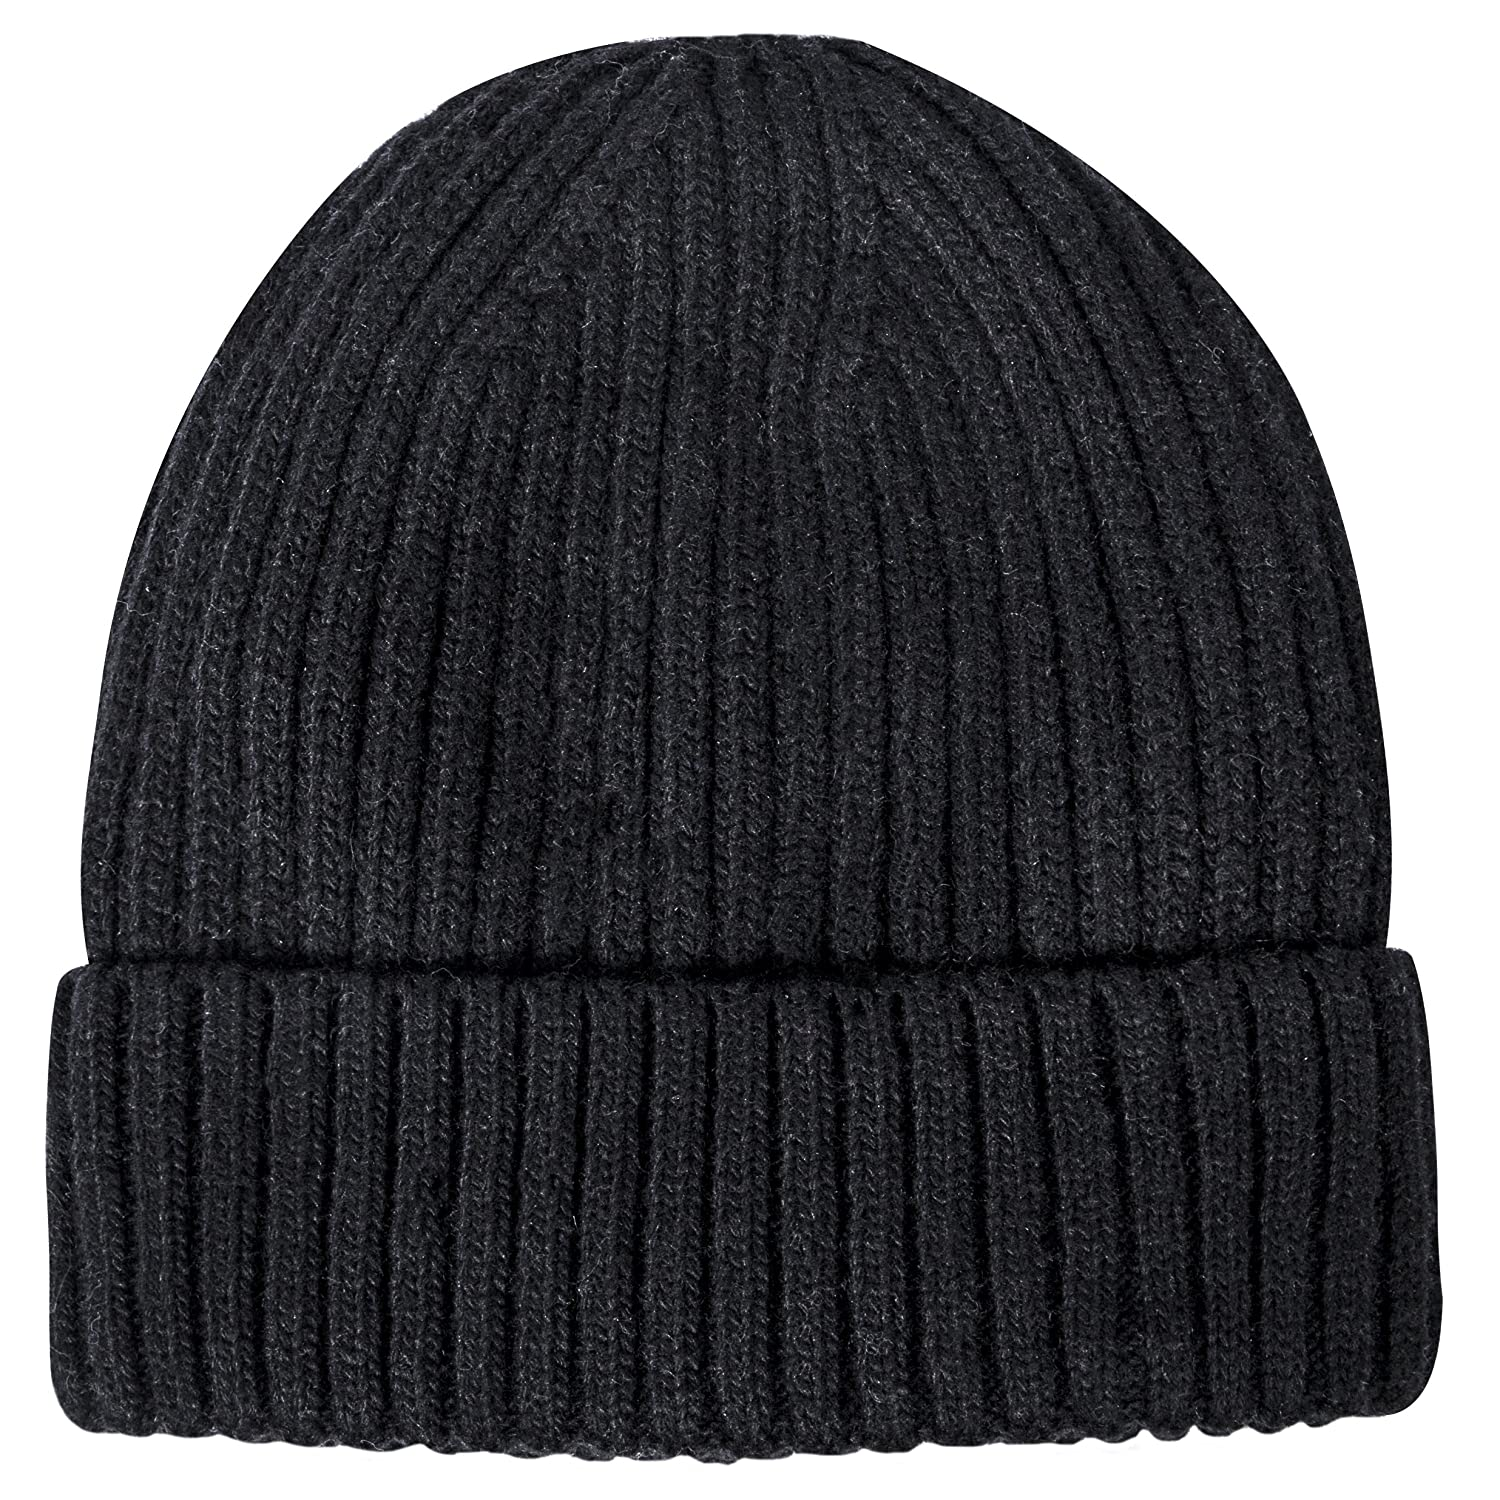 474811c082cc8 Oryer Mens Winter Hats Wool Knit Slouchy Beanie Warm Hat Baggy Skull Cap at  Amazon Men s Clothing store